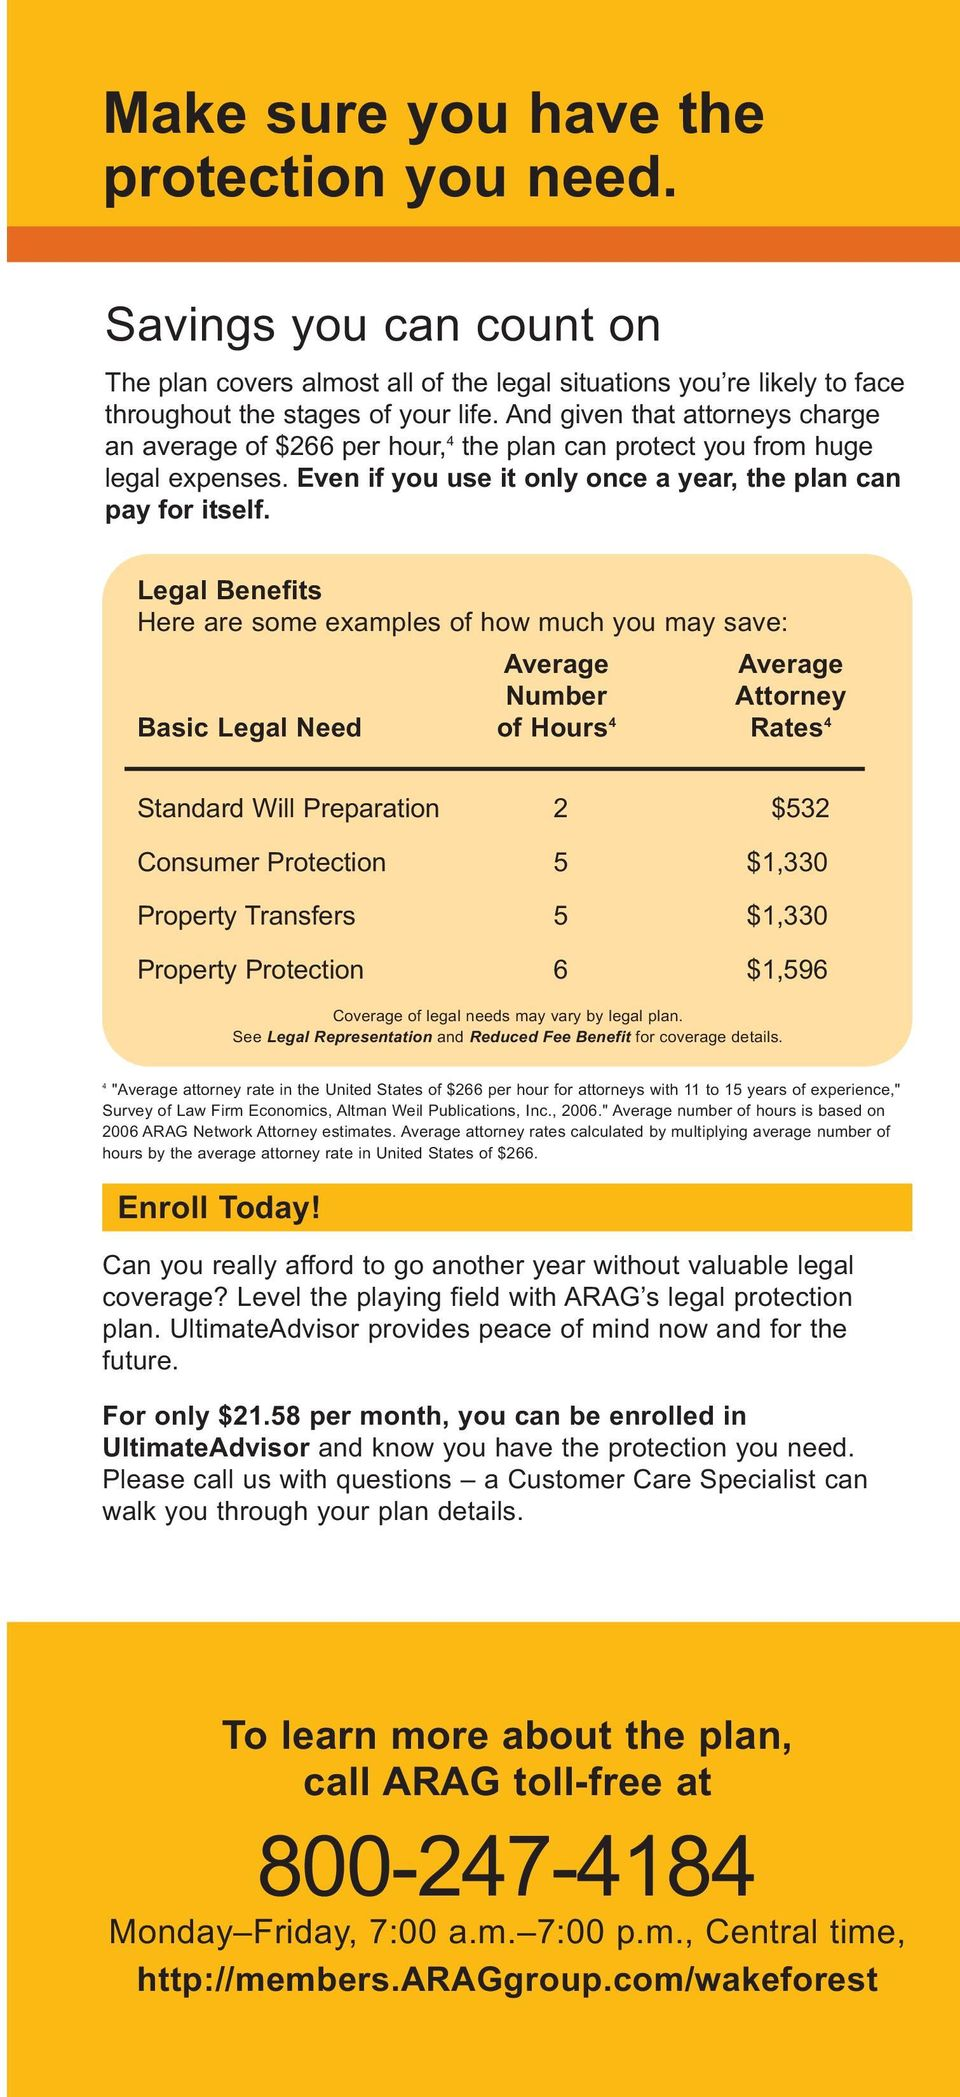 Legal Benefits Here are some examples of how much you may save: Average Average Number Attorney Basic Legal Need of Hours 4 Rates 4 Standard Will Preparation 2 $532 Consumer Protection 5 $1,330